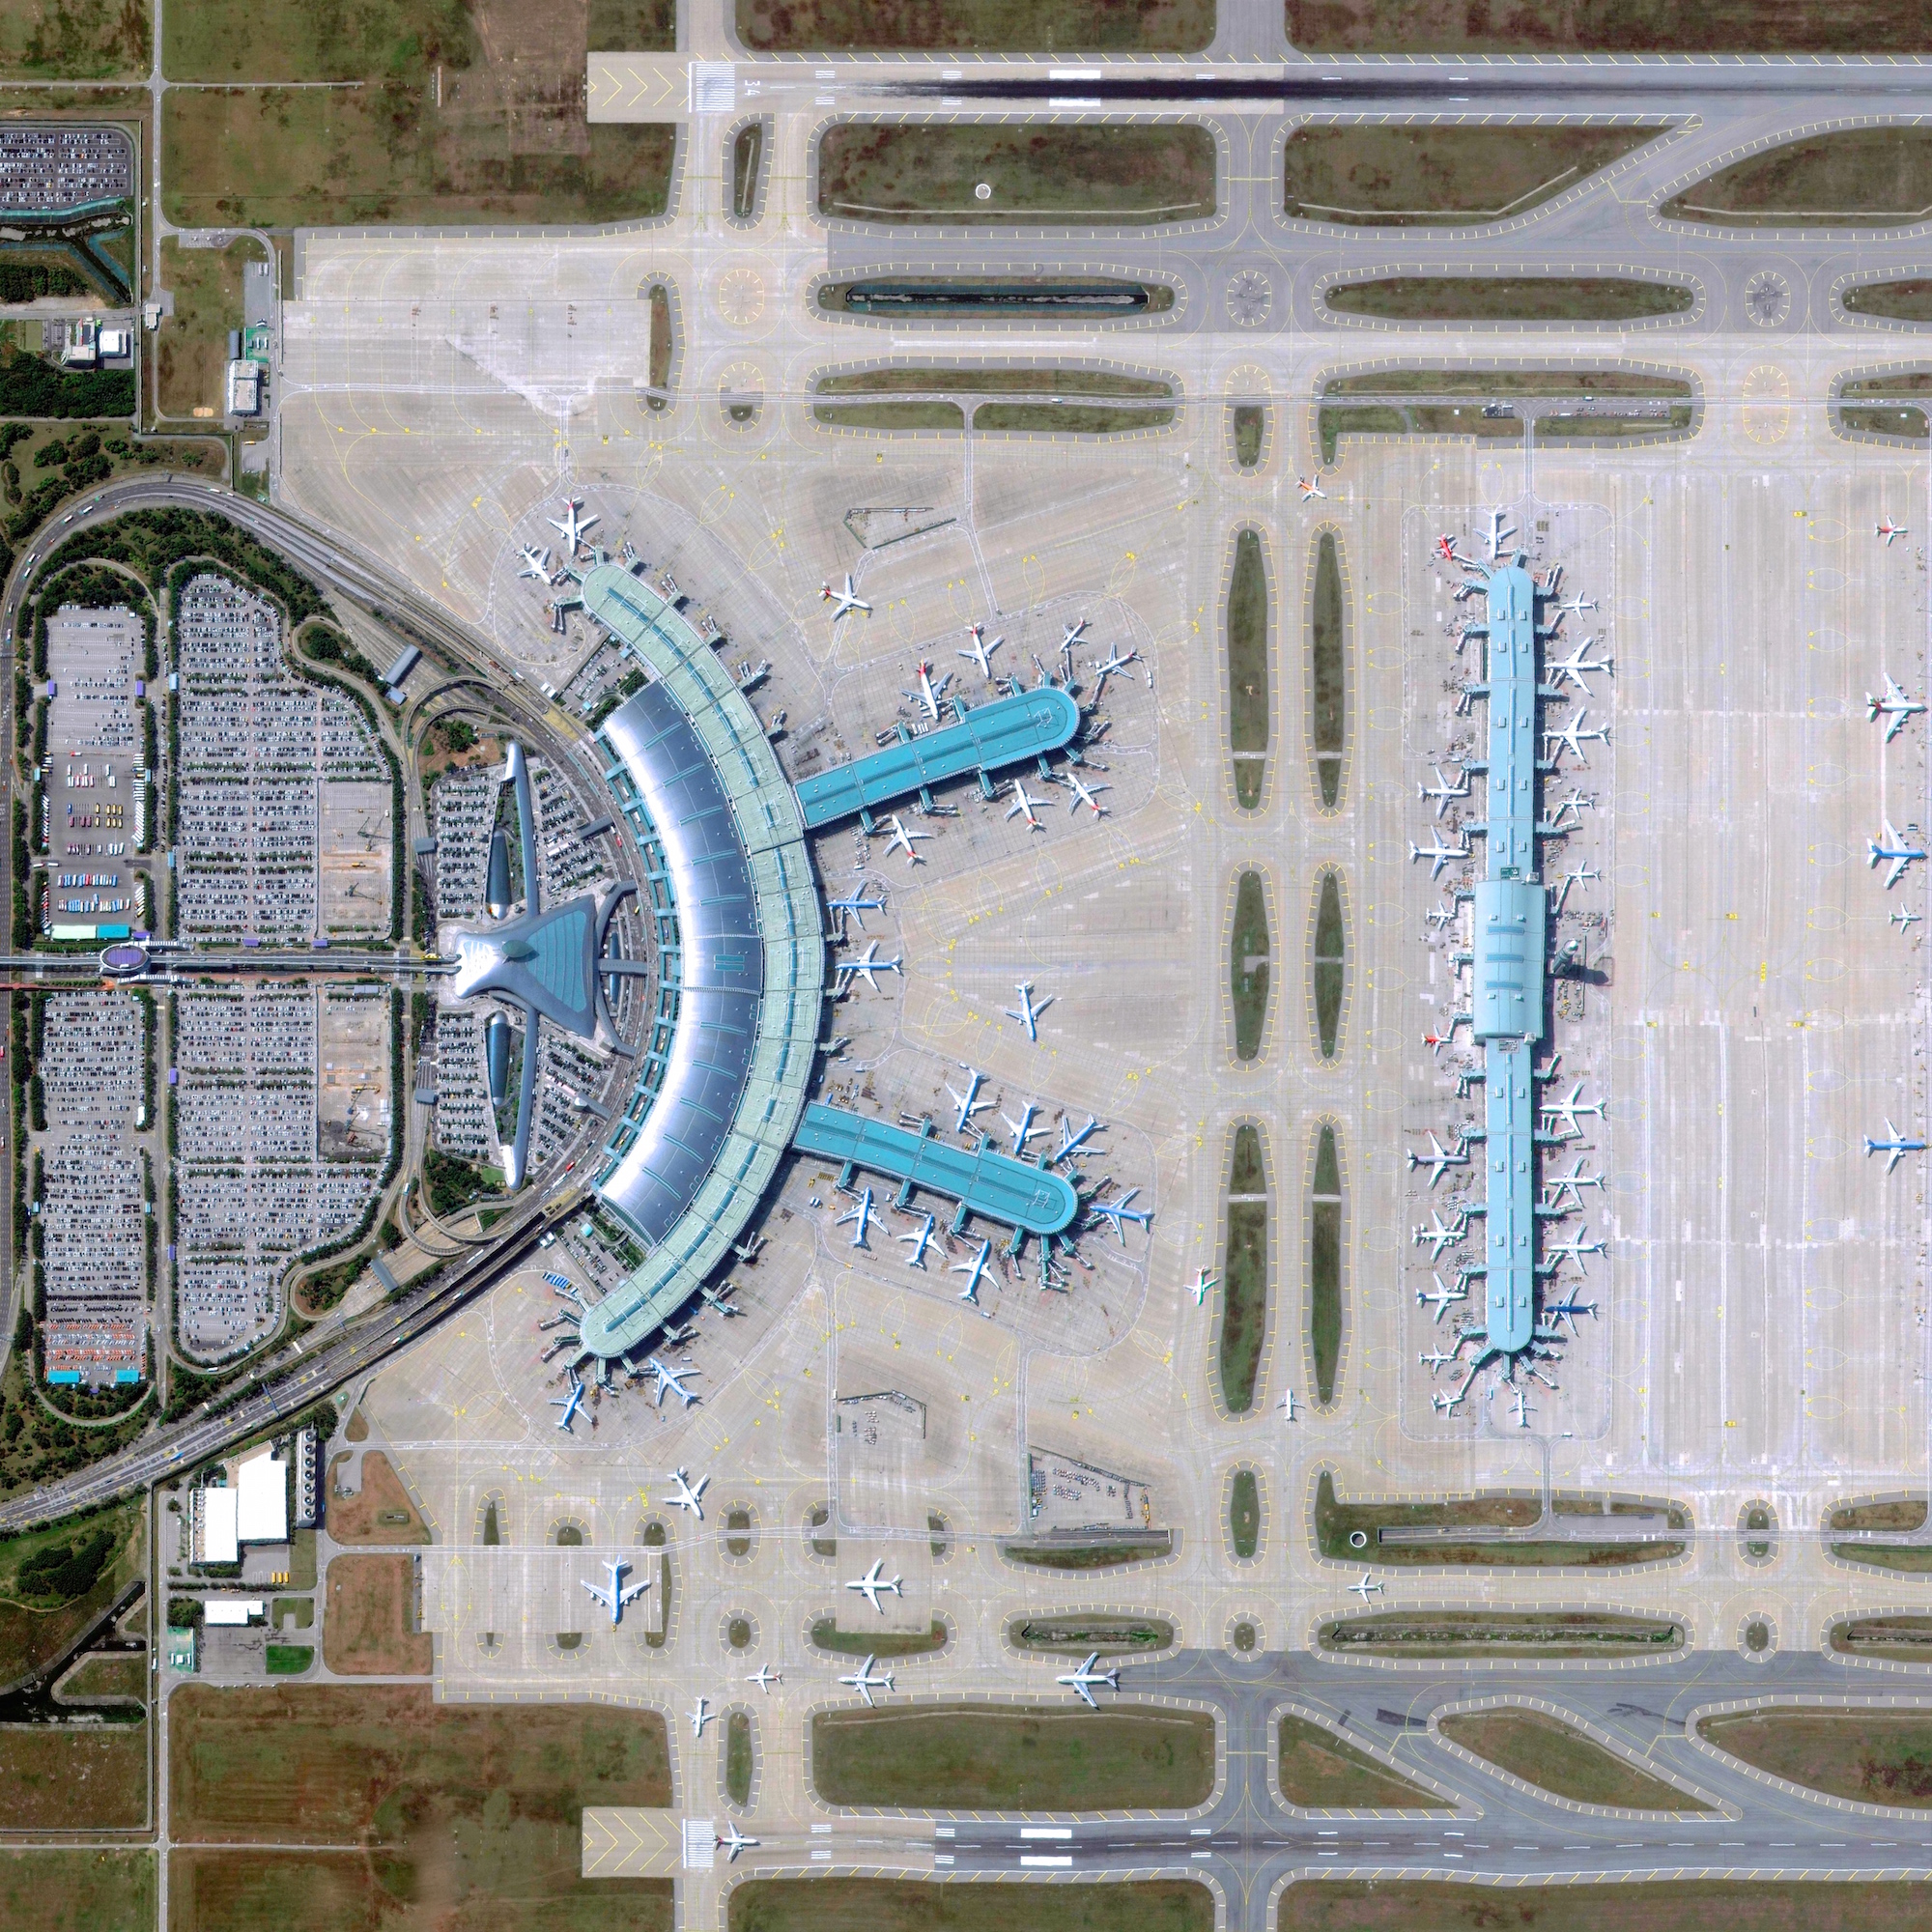 7/9/2015   Incheon International Airport   Incheon, South Korea  37°27′48″N 126°26′24″E    Incheon International Airport is located thirty miles west of Seoul, South Korea. The airport is one of the busiest in the world (23rd by annual passenger traffic at 47+ million) and also one of the most efficient. Airport authorities claim that the average departure and arrival at Incheon take only 19 minutes and 12 minutes, respectively. These times are significantly lower than the international average of 60 minutes for departures and 45 minutes for arrivals.